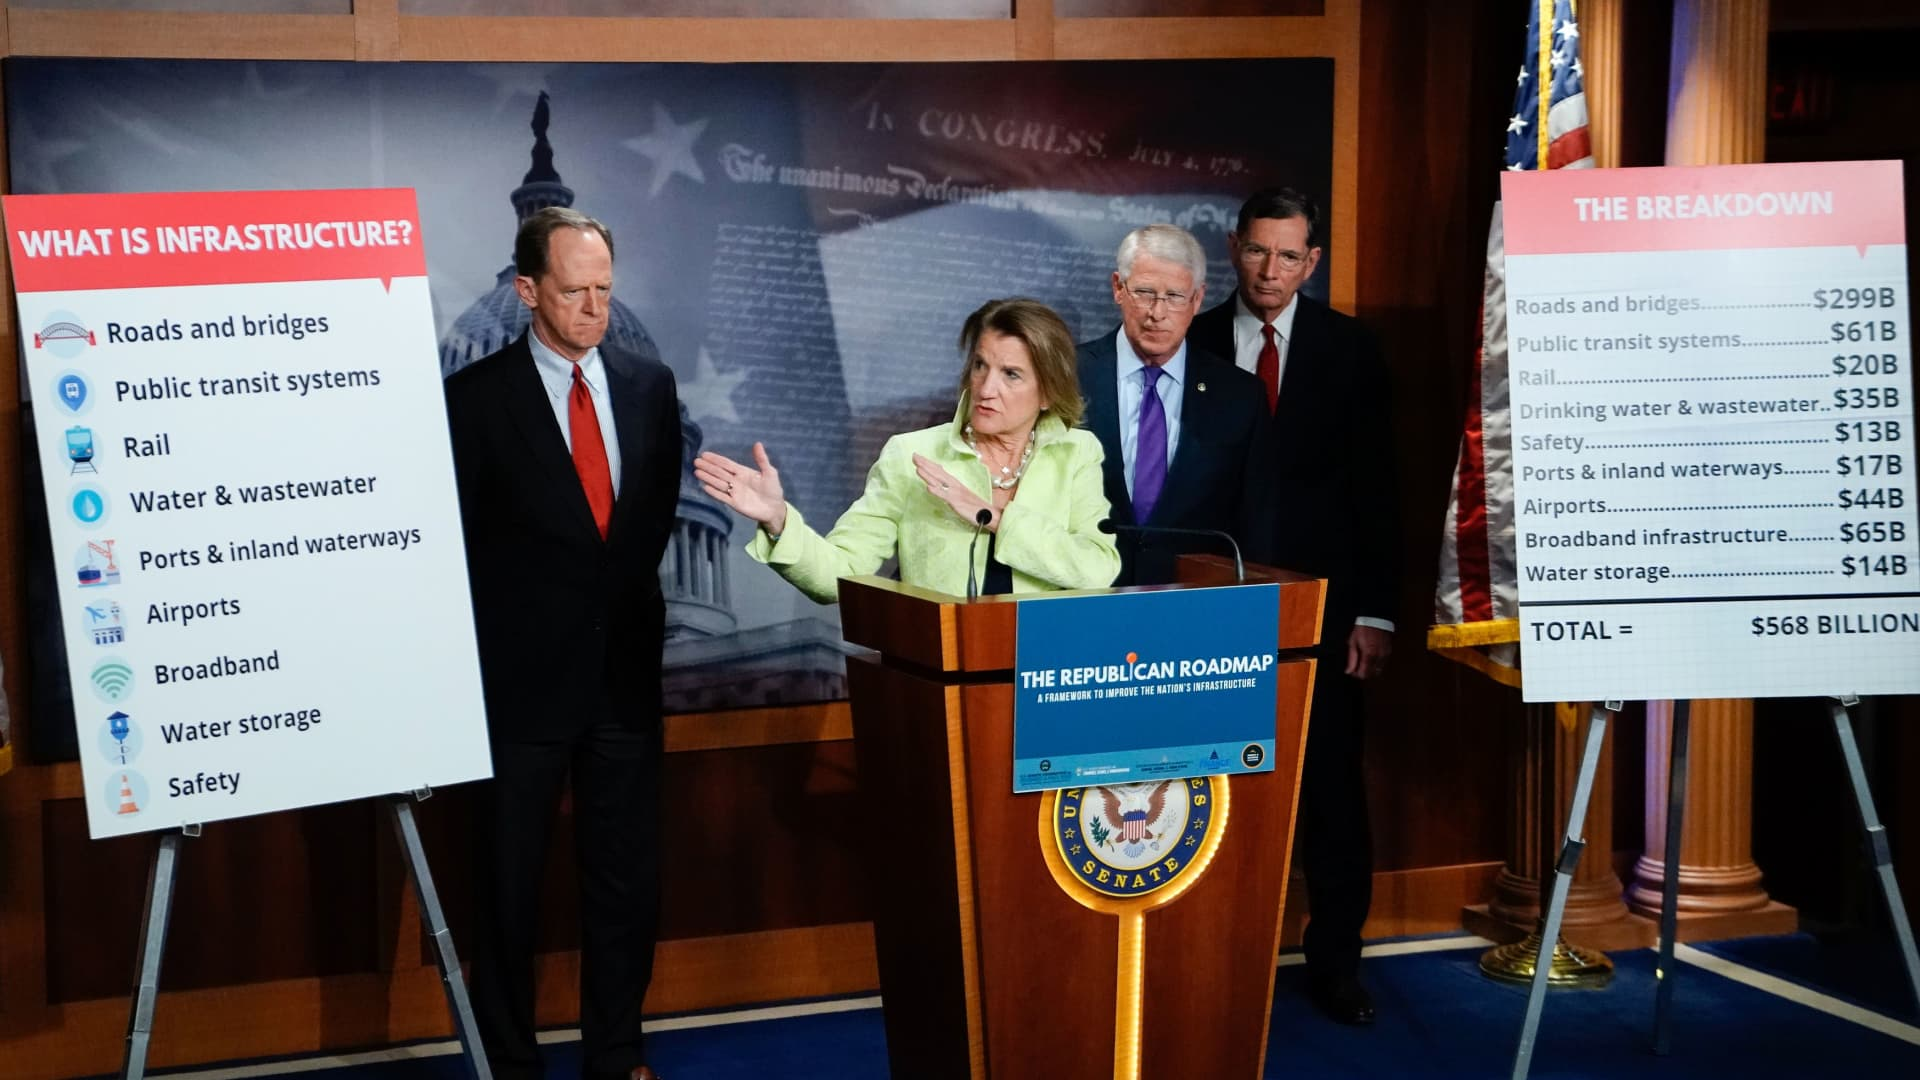 Shelley Capito (R-WV) speaks during a news conference to introduce the Republican infrastructure plan, at the U.S. Capitol in Washington, U.S., April 22, 2021.